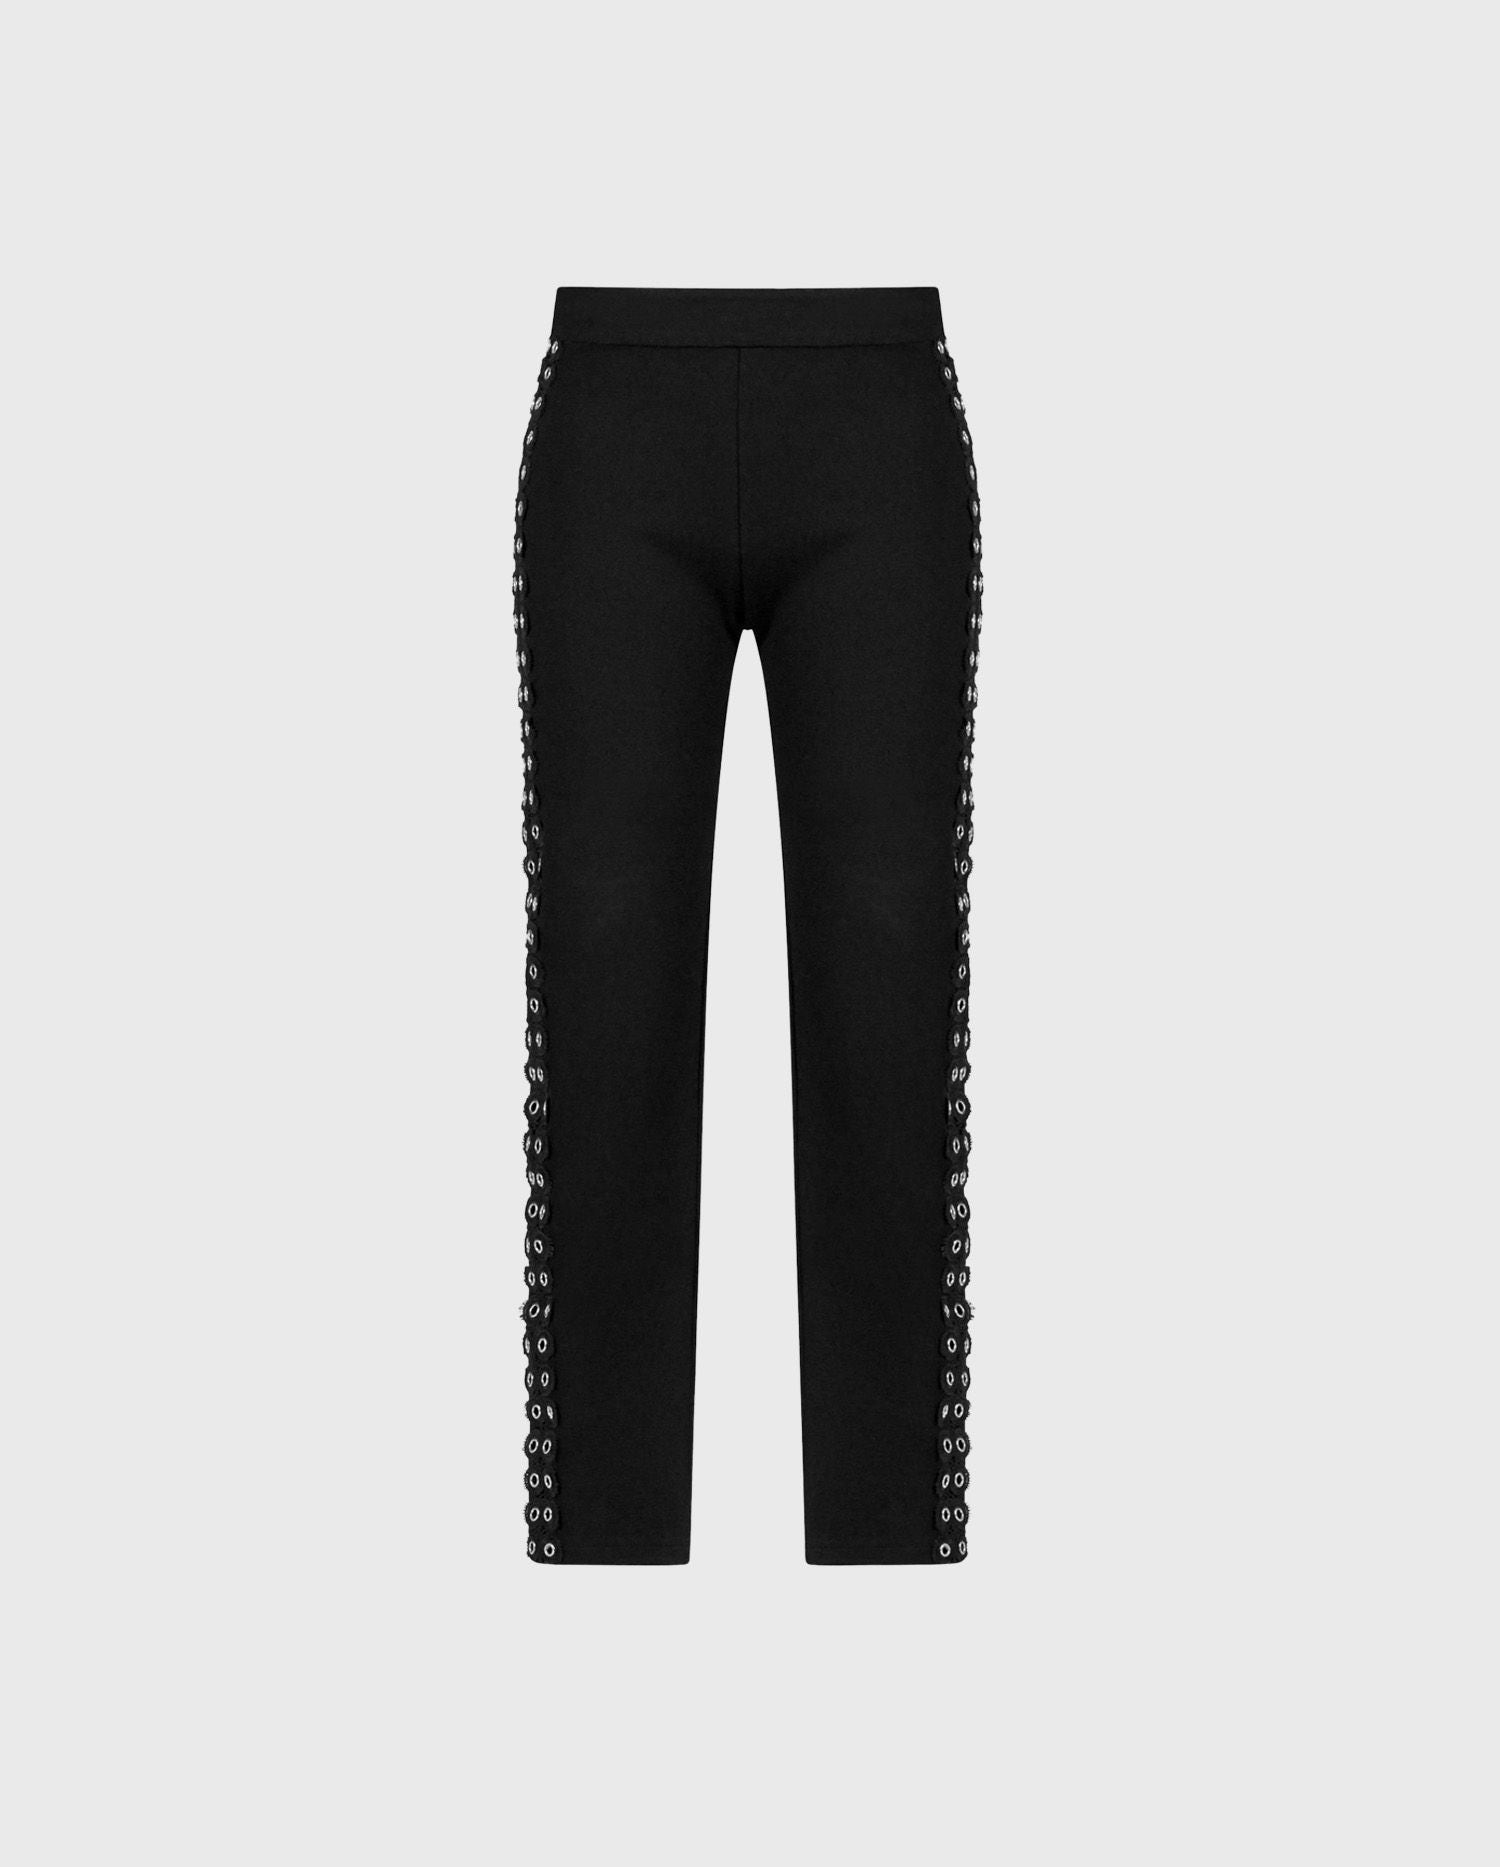 Anne Fontaine Lean Leggings: Stretchy milano leggings with silver grommet and lace details